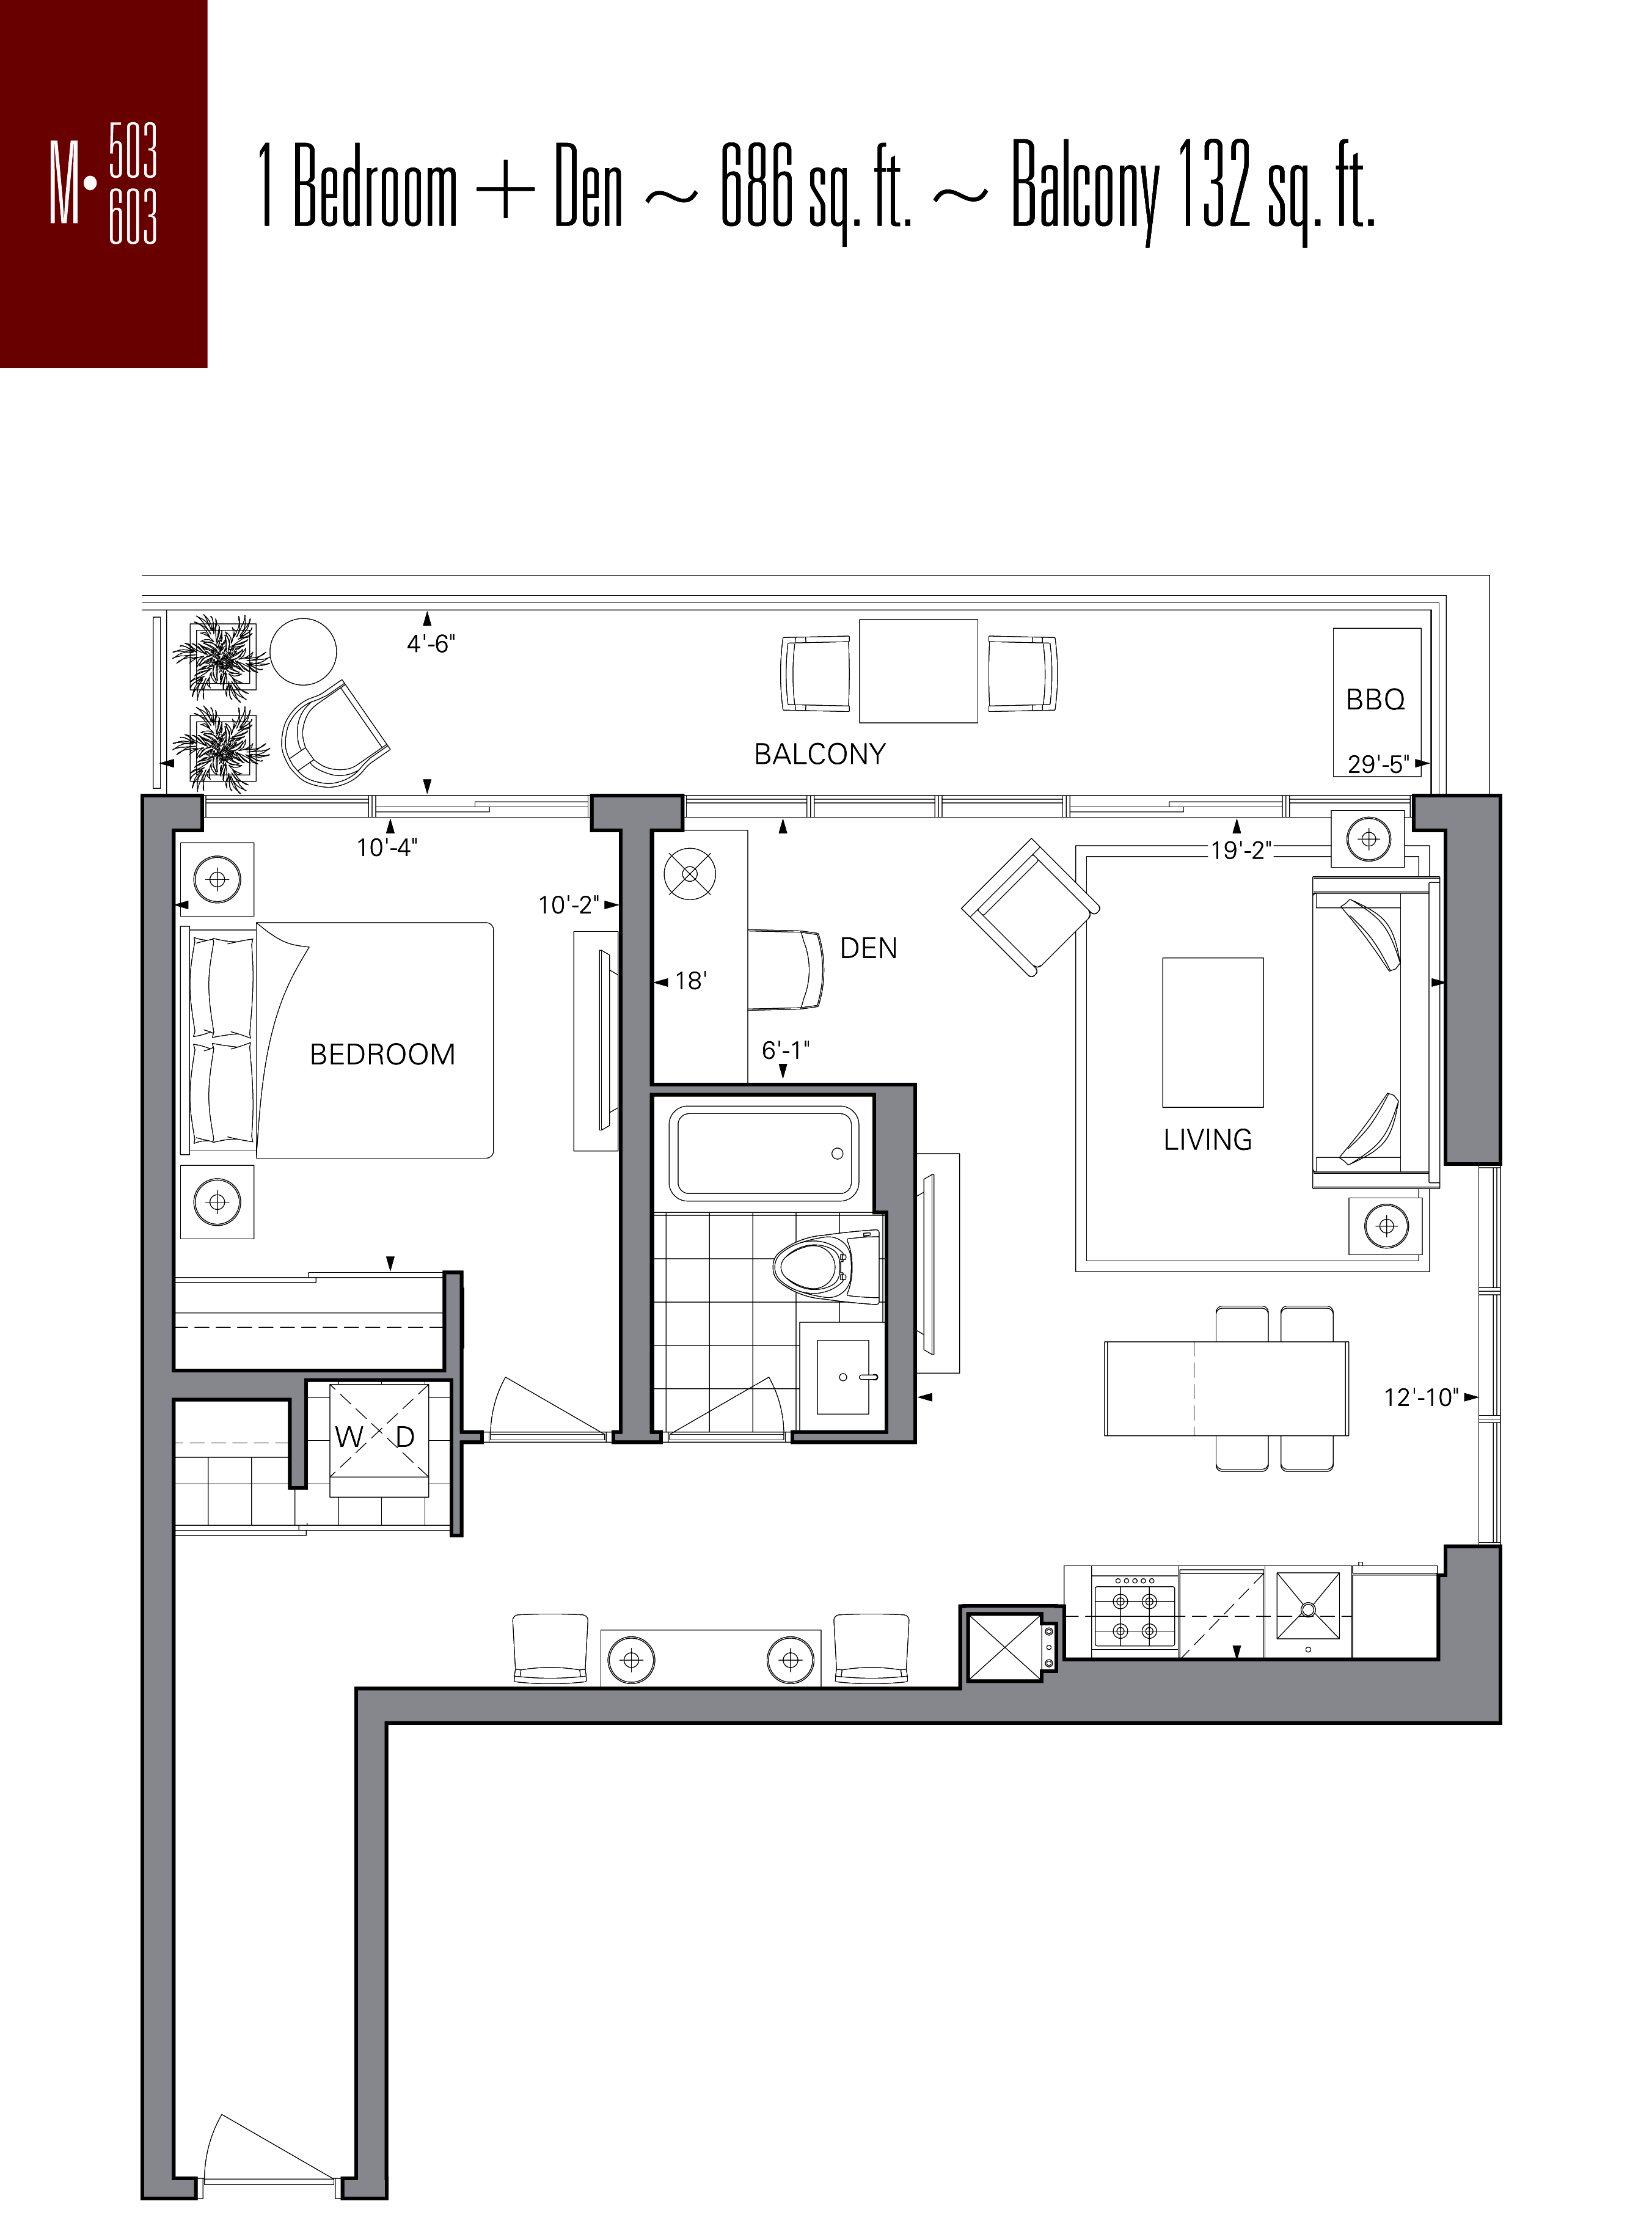 RISE CONDOS - FLOORPLANS ONE BED 686 SQ FT - CONTACT YOSSI KAPLAN